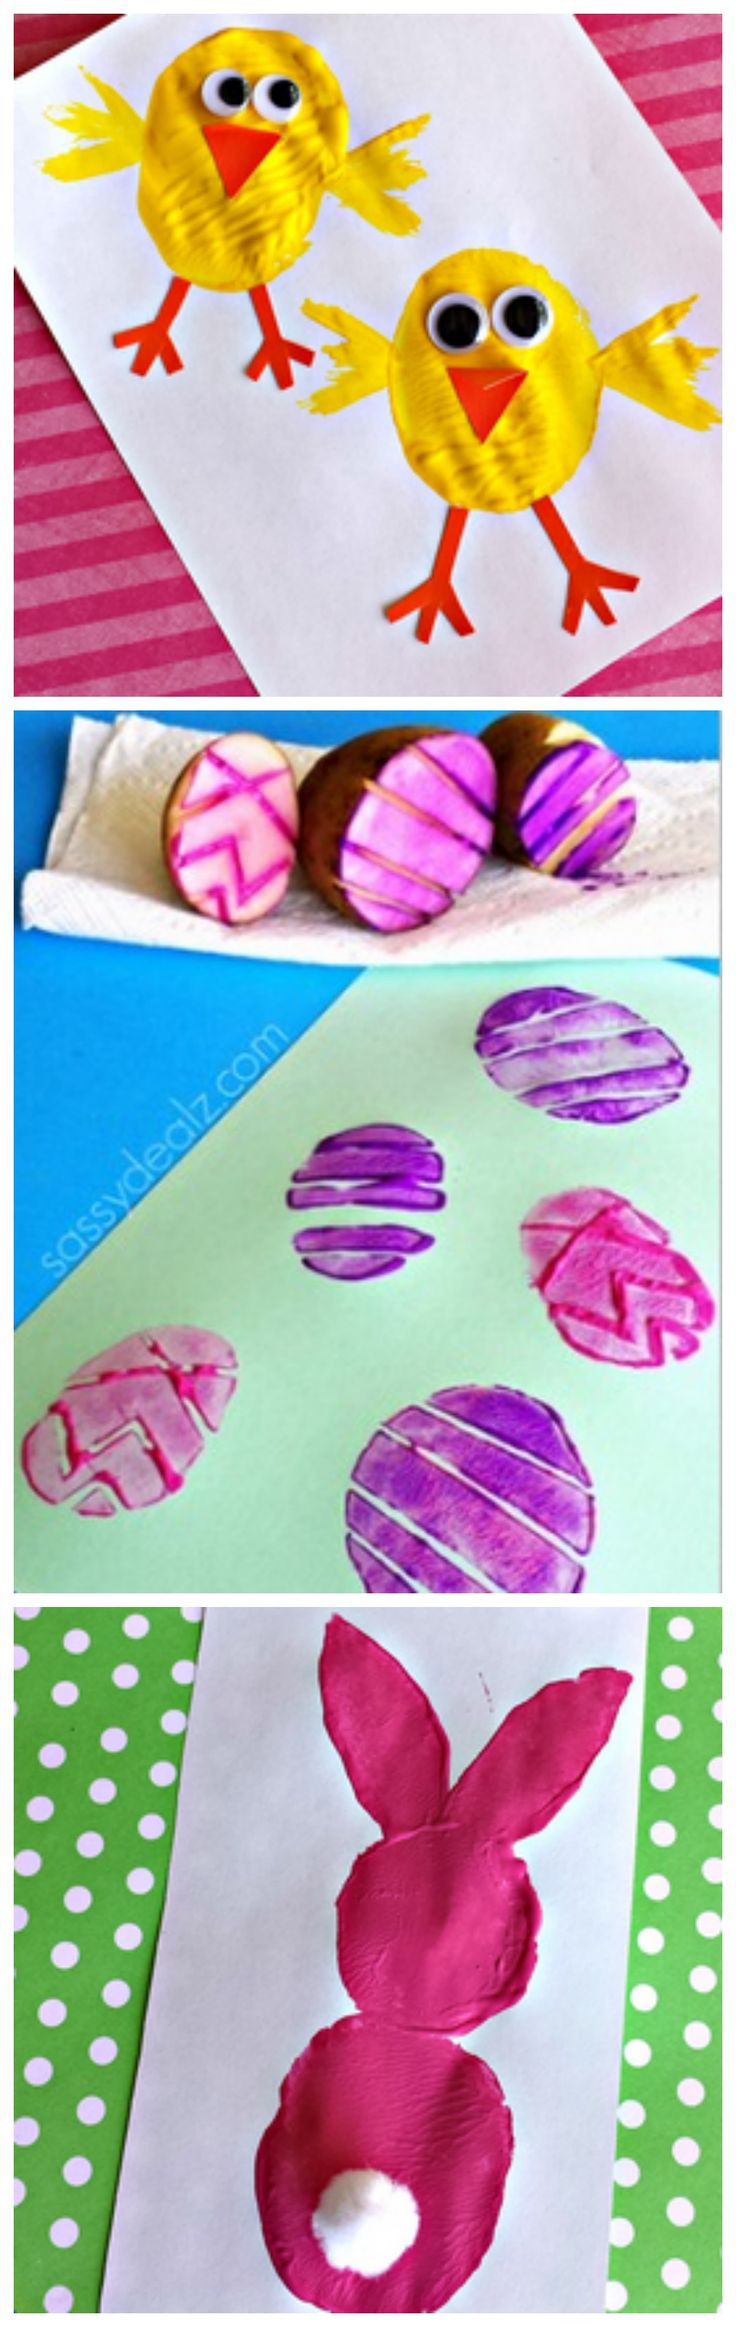 Potato Stamping Craft Ideas (Chick, Easter Eggs, Bunny) Cute Easter crafts for kids + tons more!